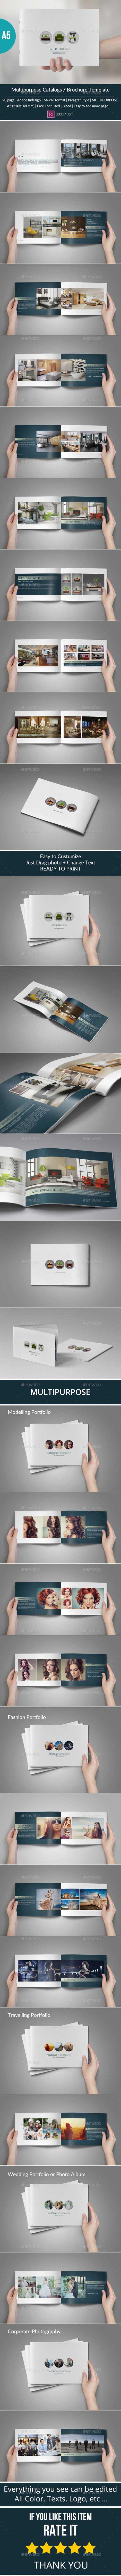 GraphicRiver Multipurpose Catalogs Brochure 9382183